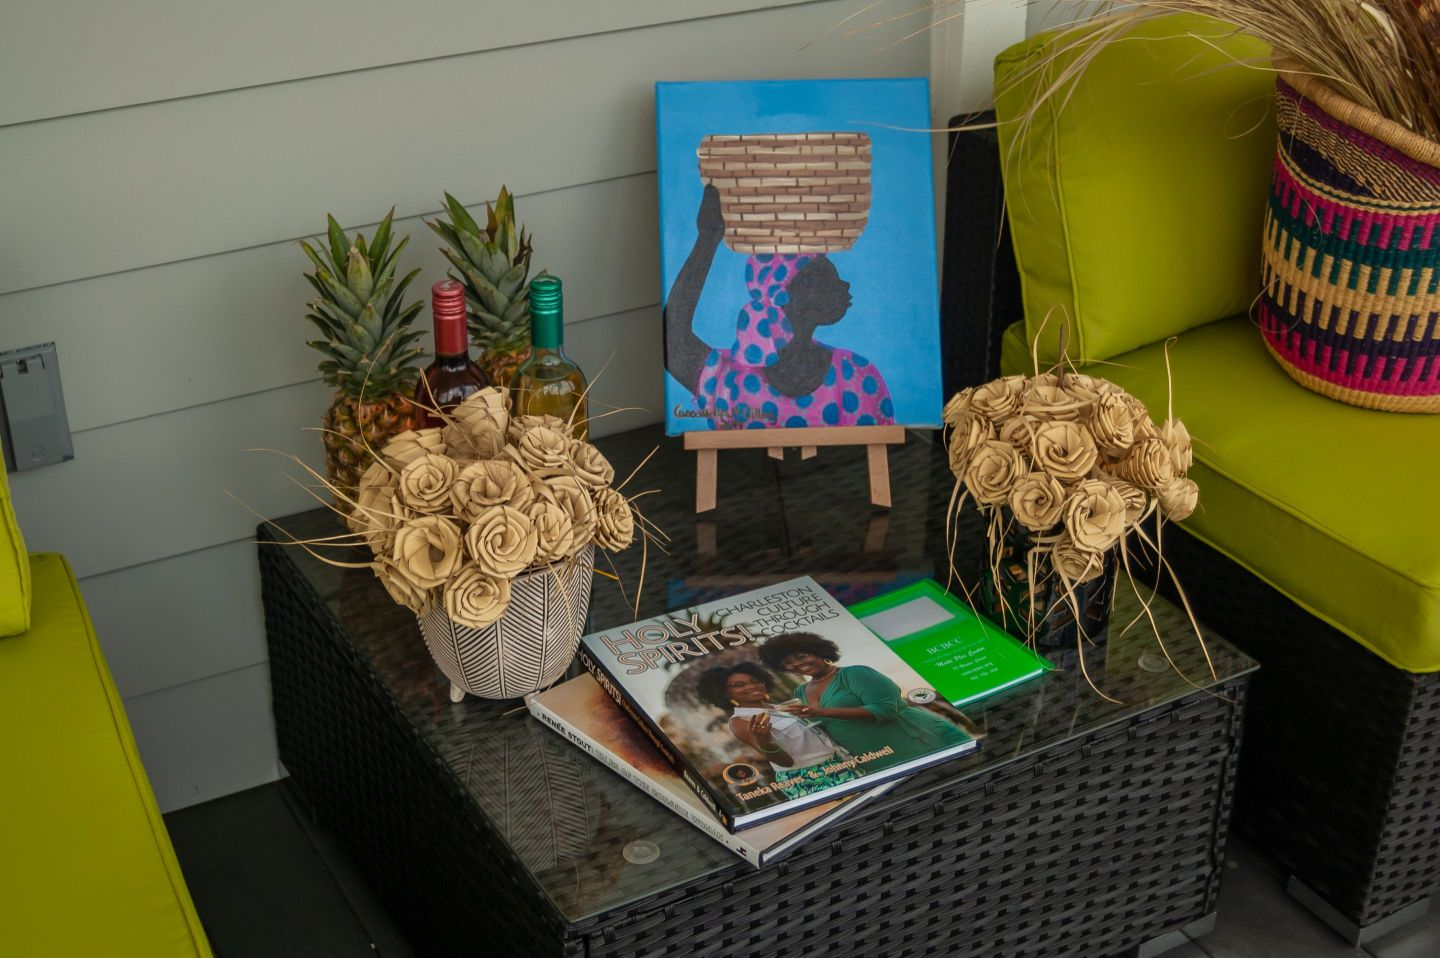 BBCC-2019_7 Gullah Heritage Through Design: Home Decor in Beaufort, SC